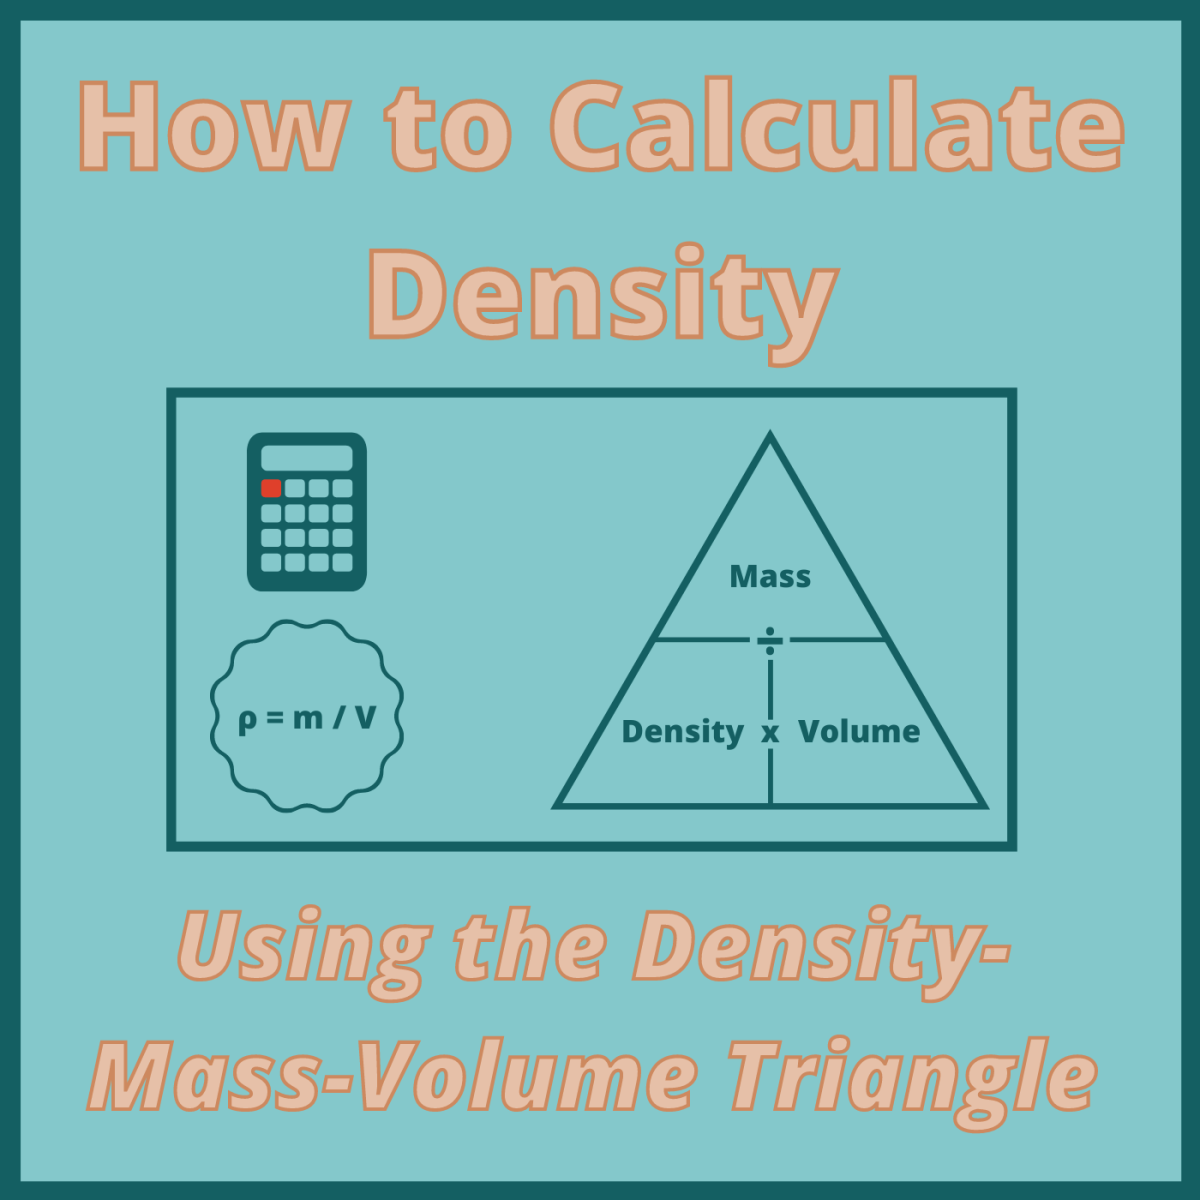 Learn how to calculate the density, mass, or volume of a solid object using this handy visual tool.